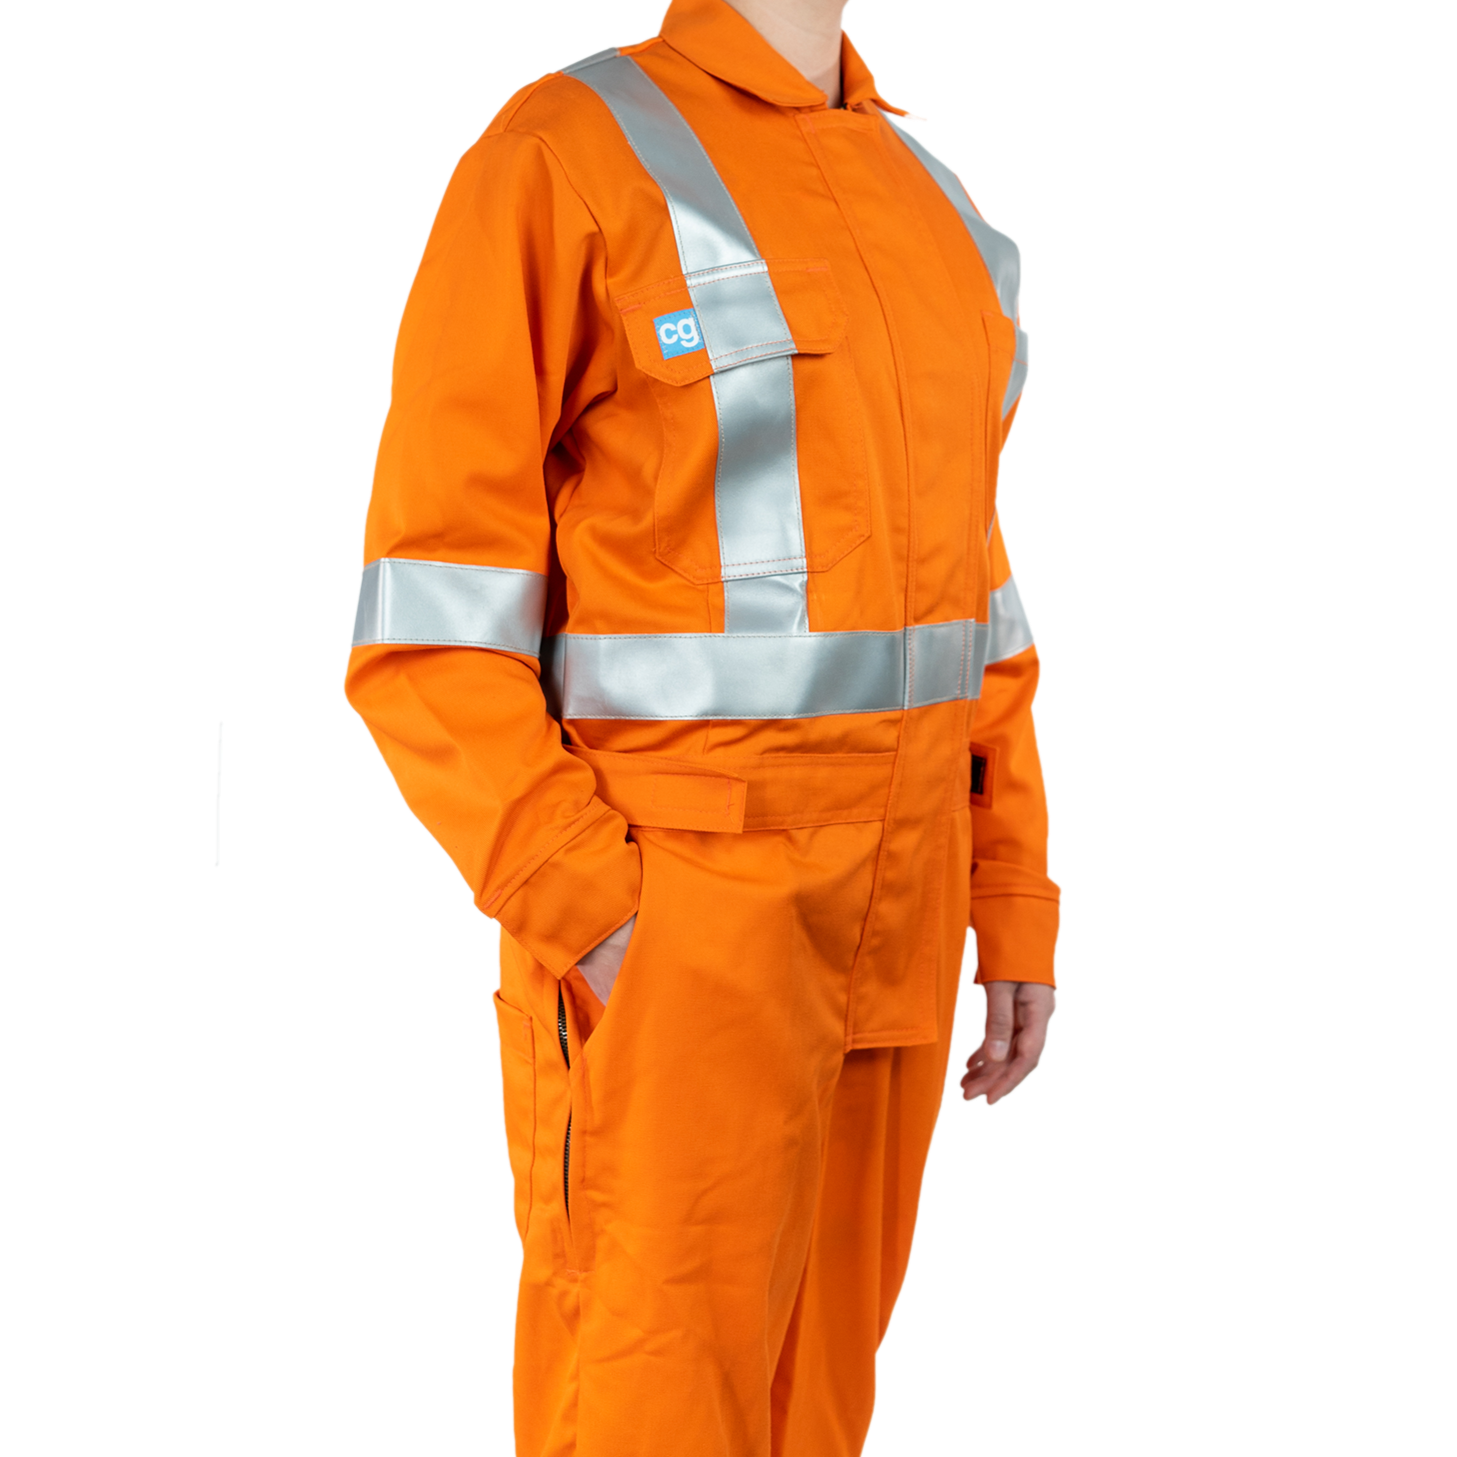 Blonde woman wearing orange Covergalls branded coverall safety garment.